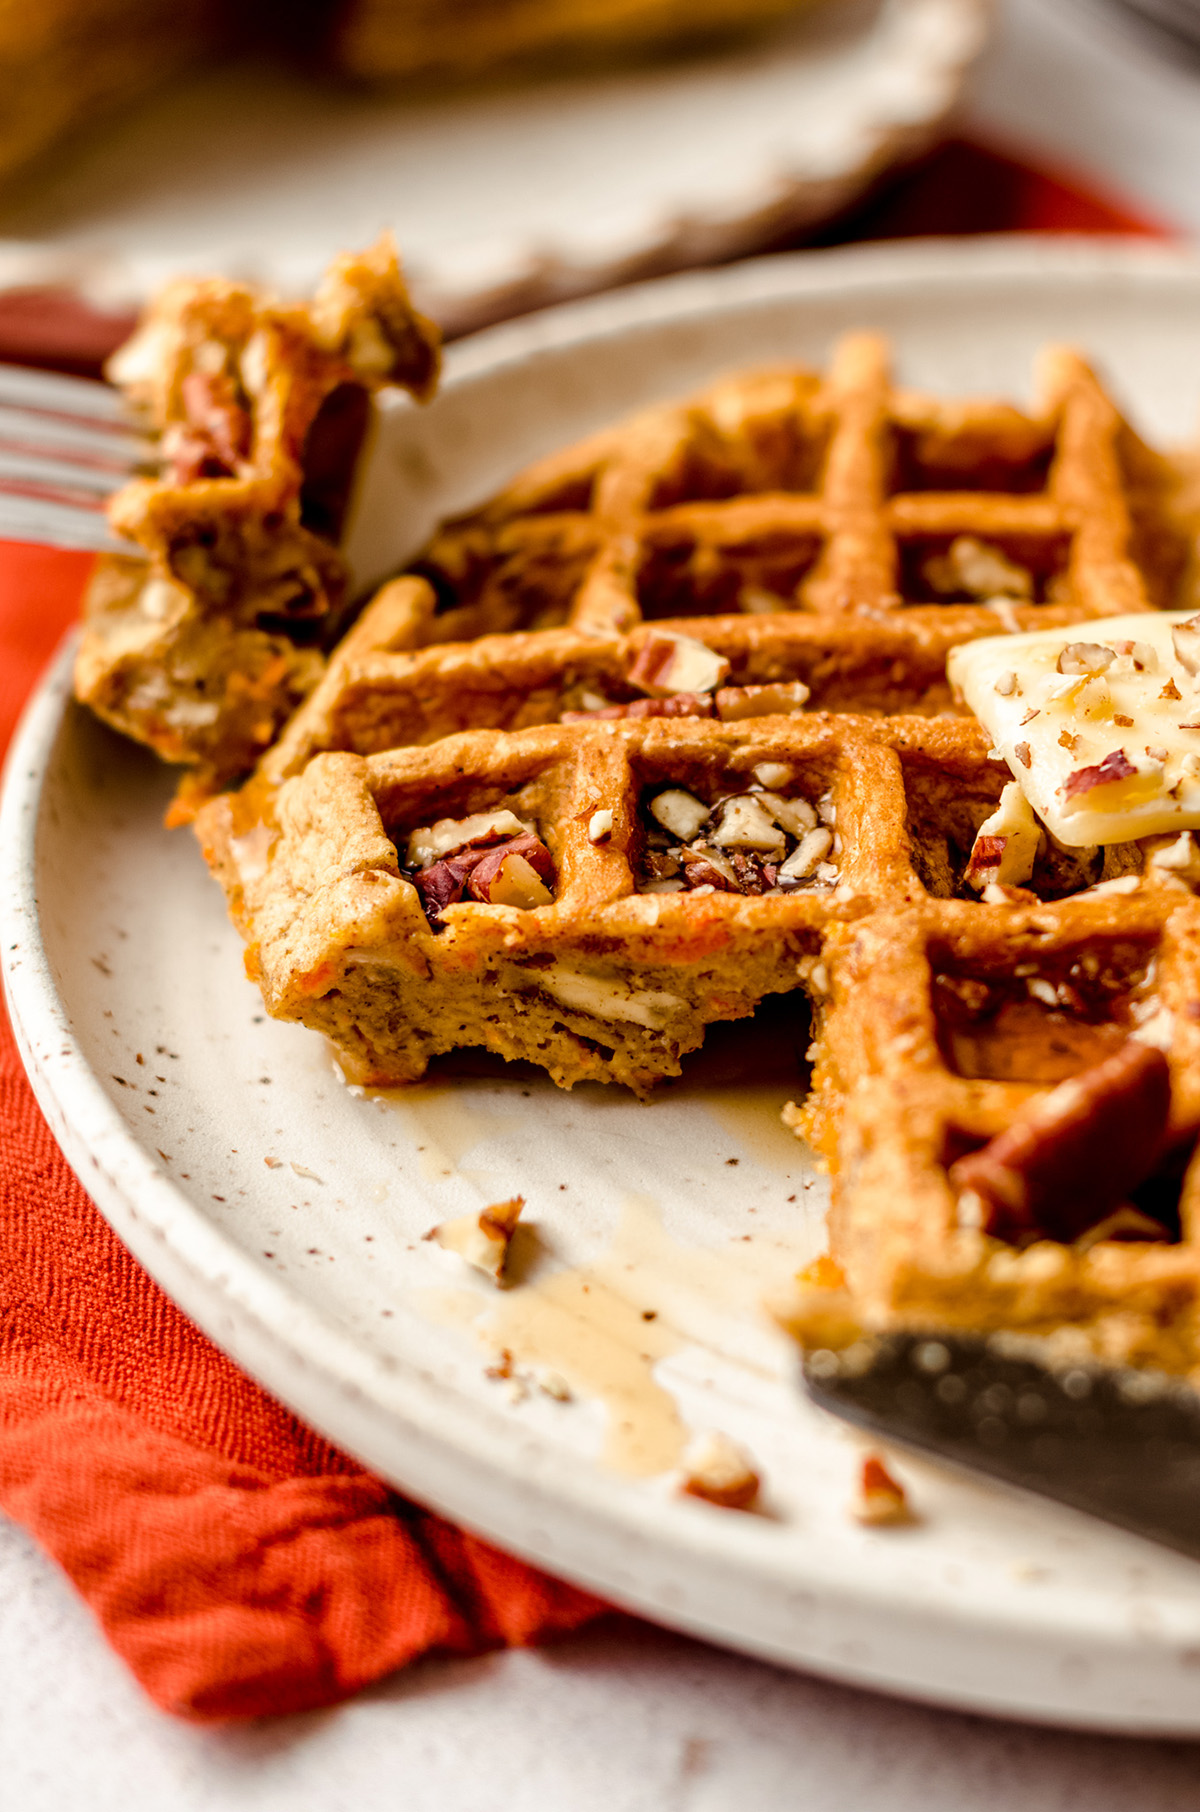 carrot cake waffle with a bite taken out of it